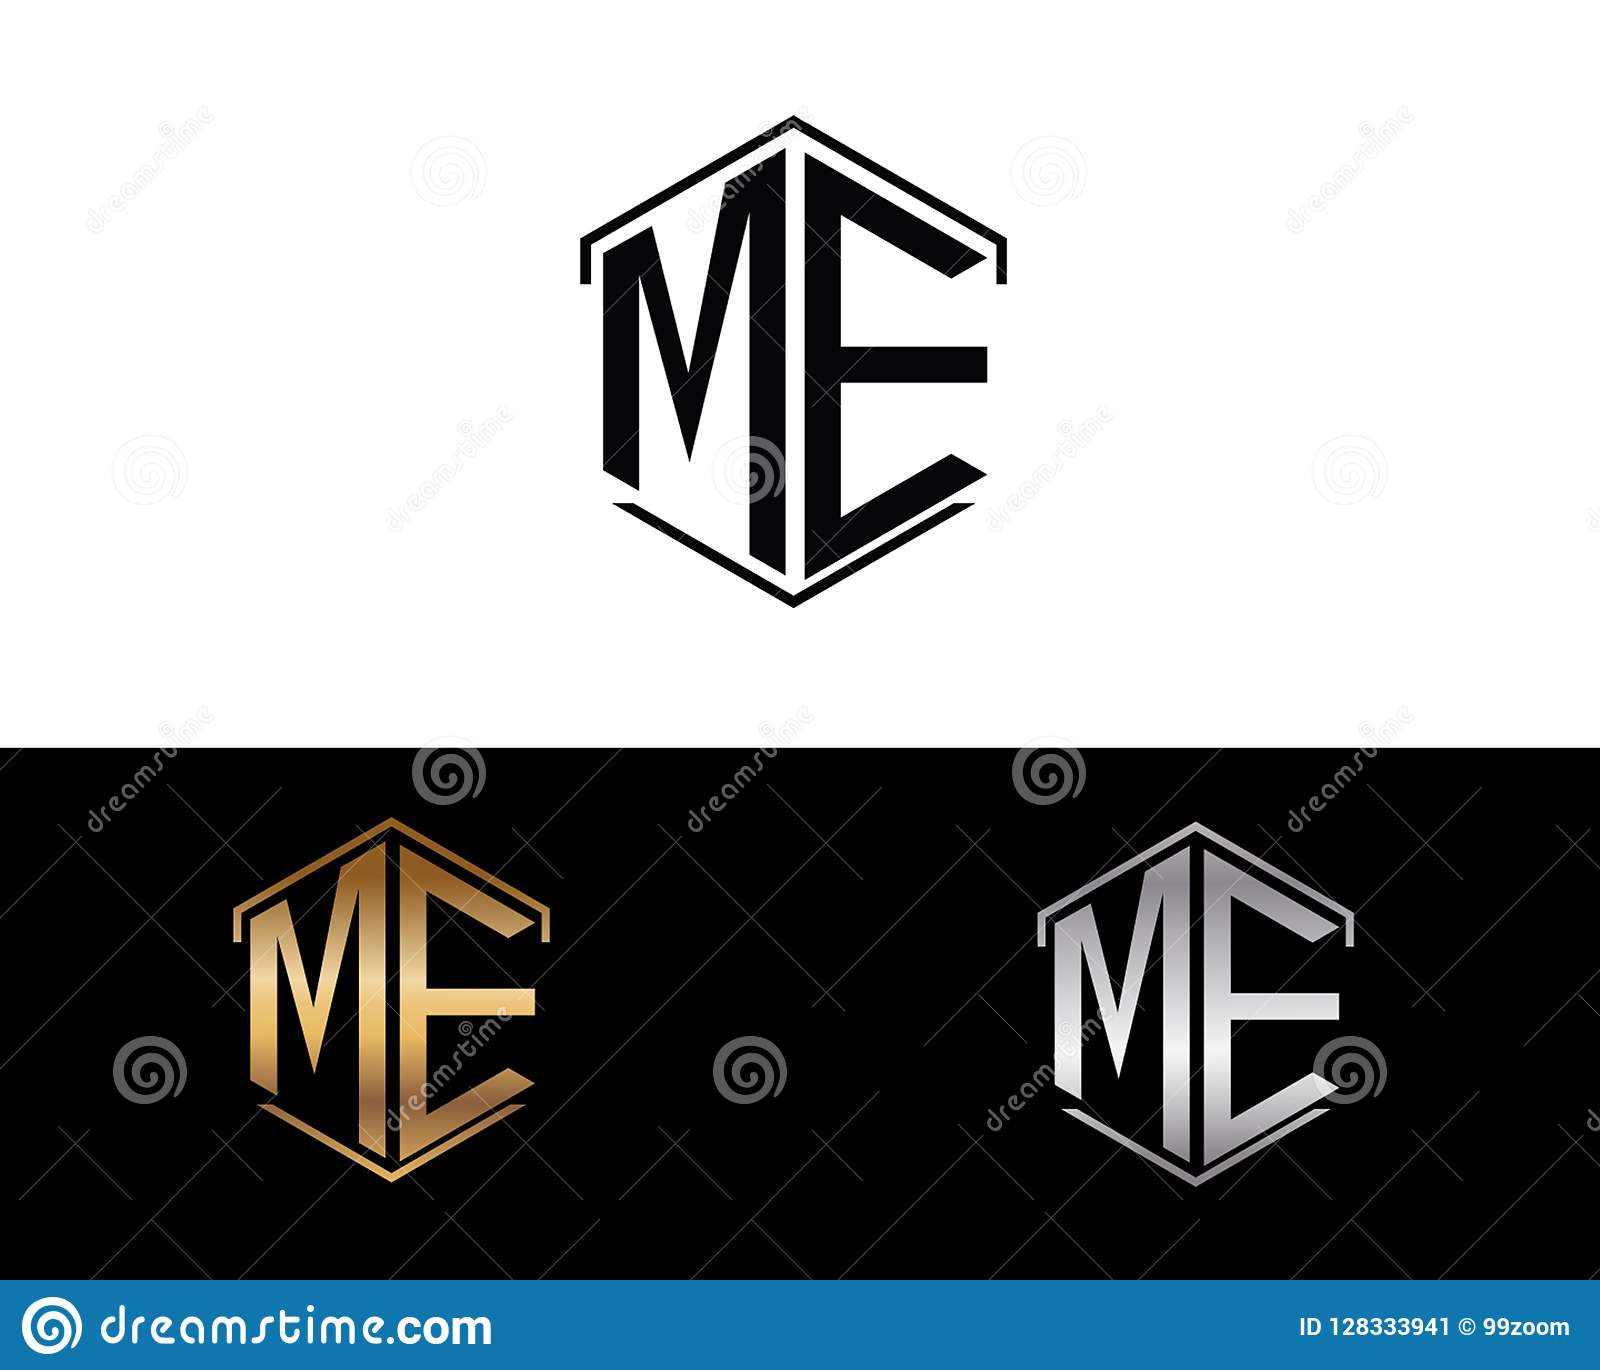 ME letters linked with hexagon shape logo